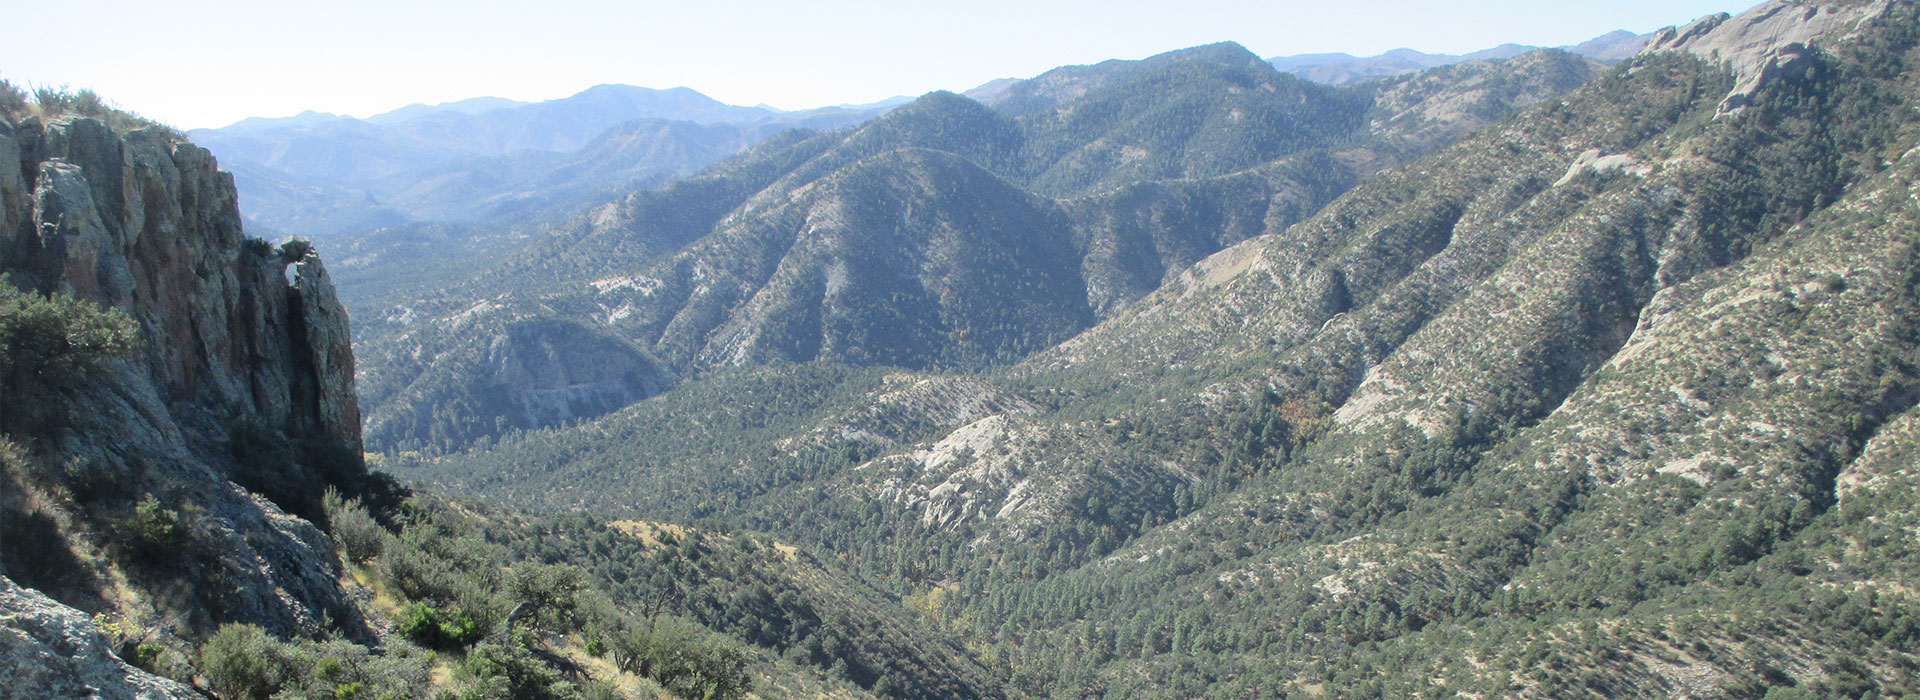 New Mexico Coues Deer Hunting Ranch & Outfitters